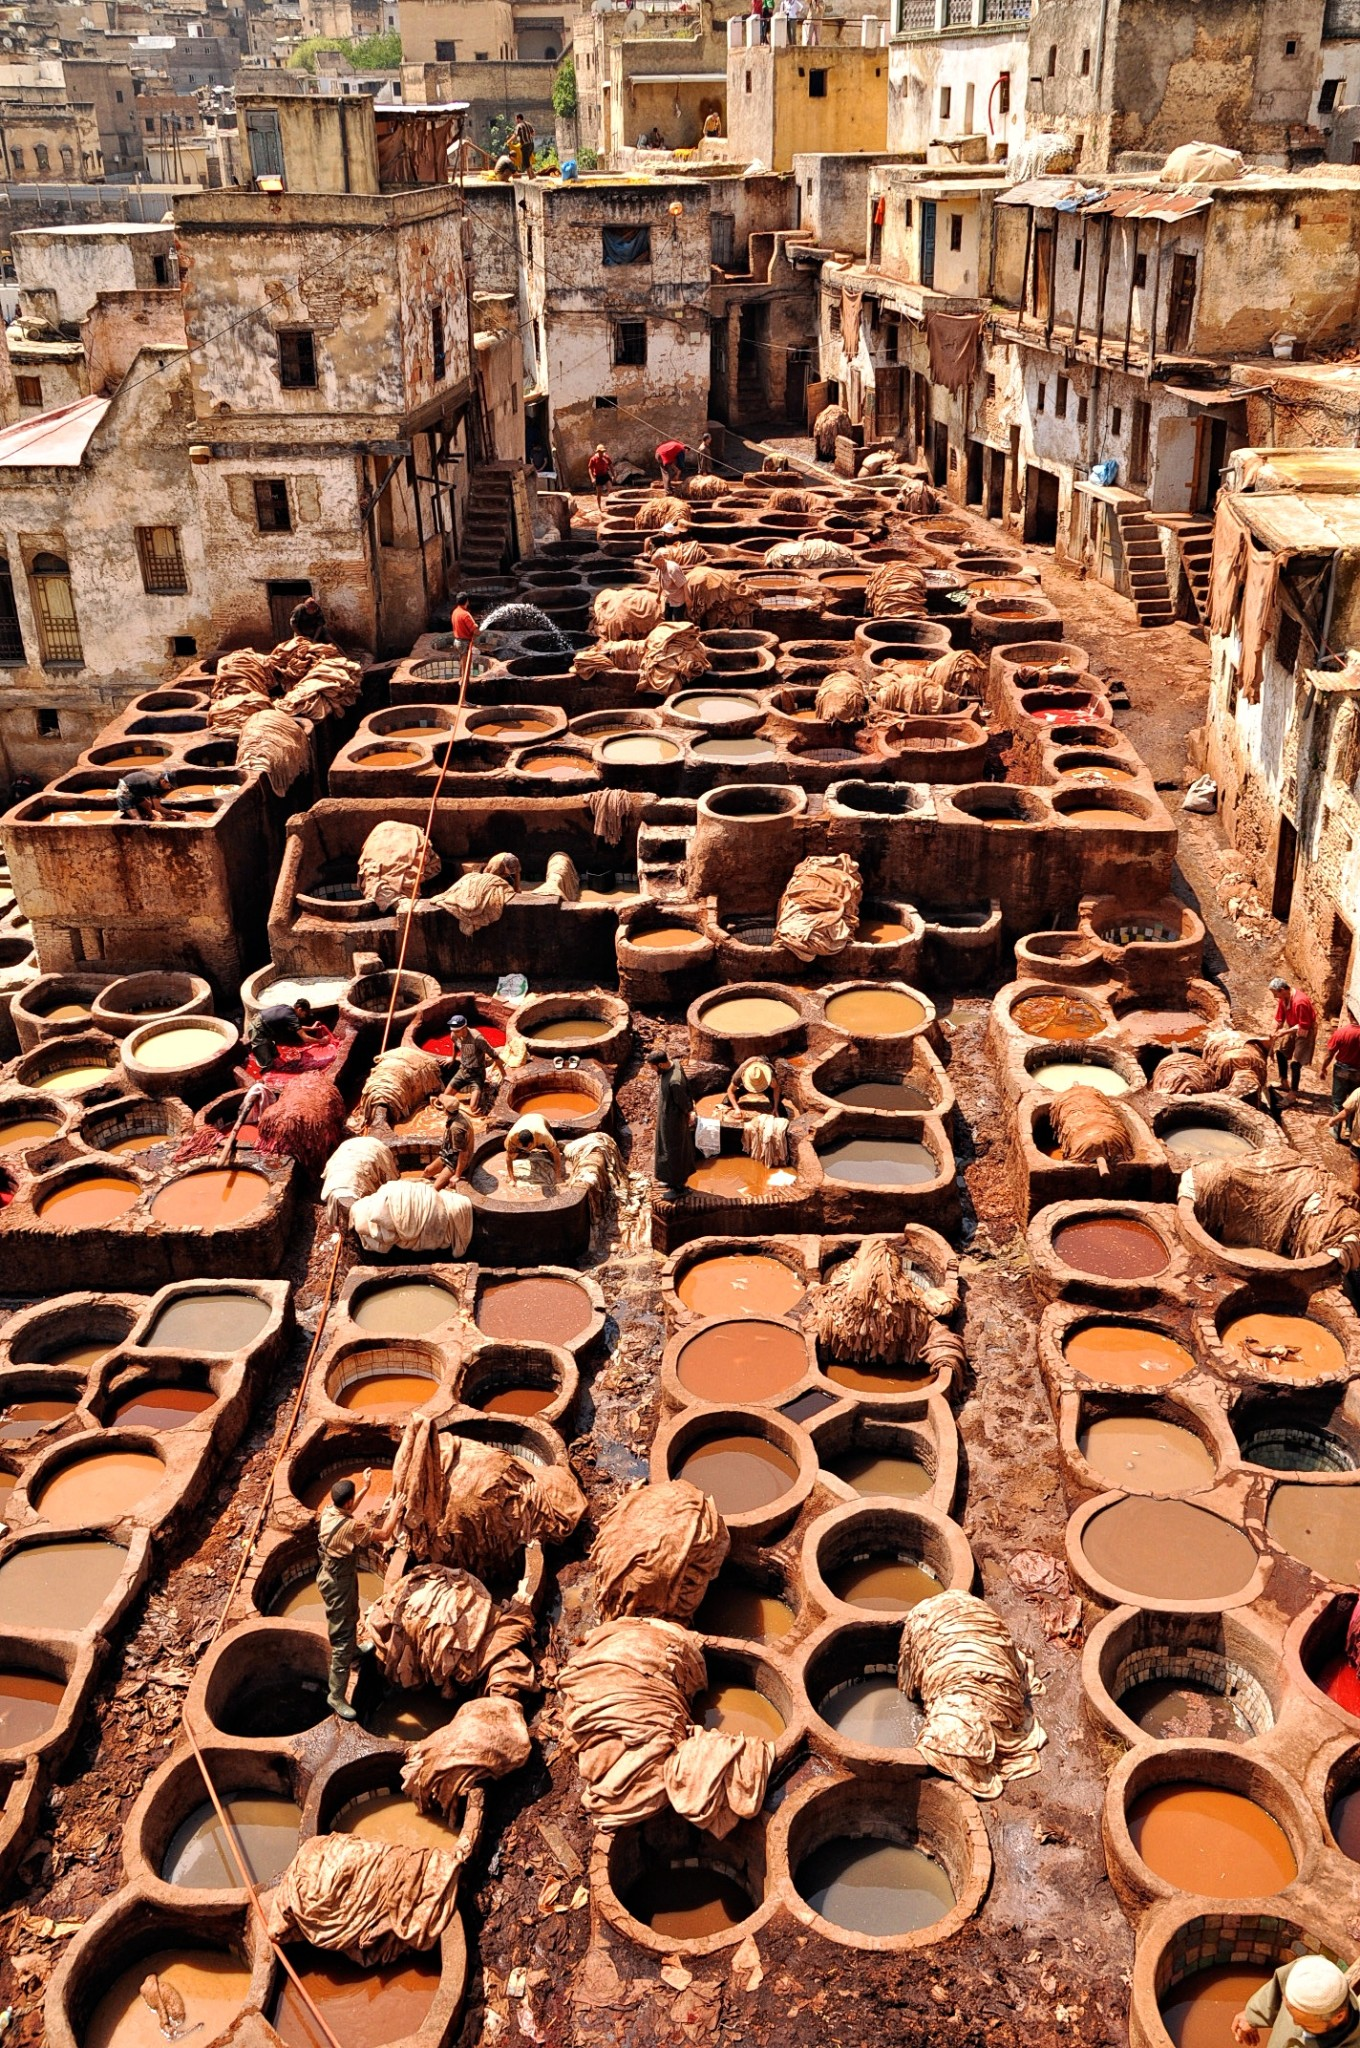 Chouara leather tannery in Fez, Morocco